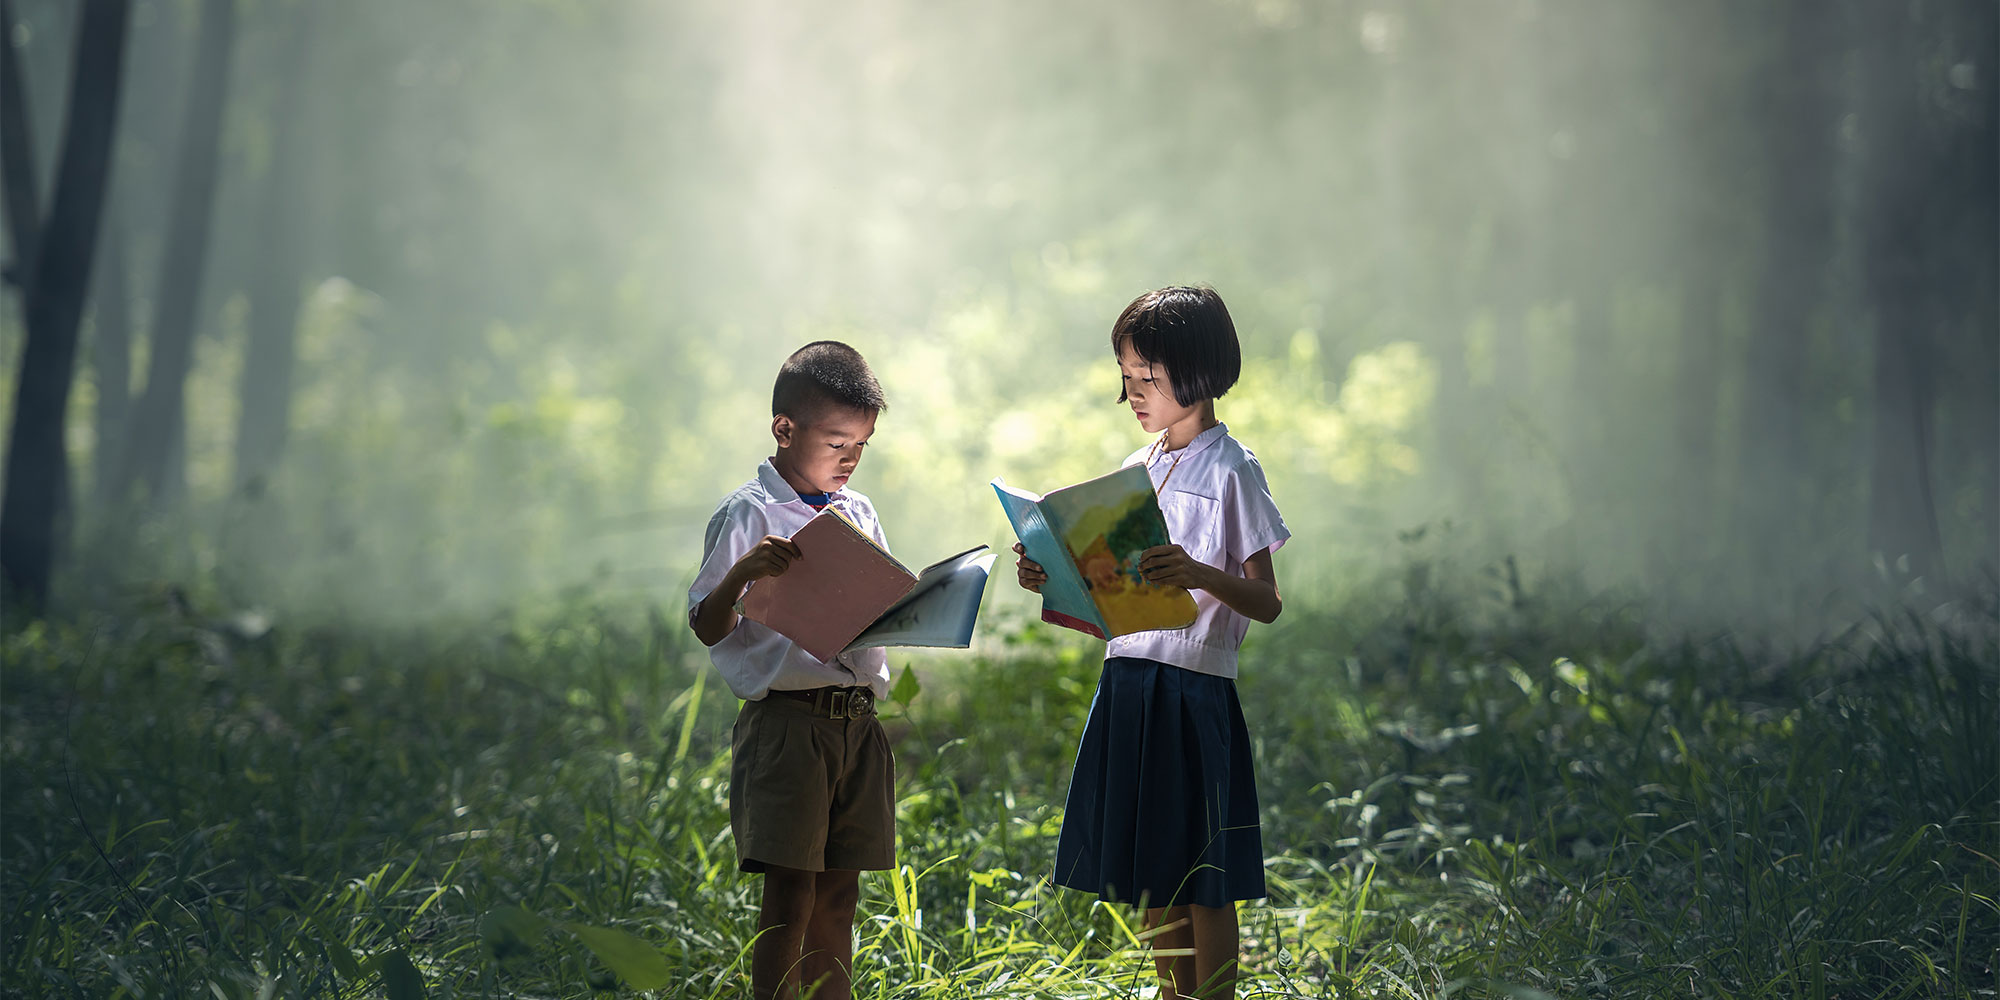 Children reading. Image via pixabay